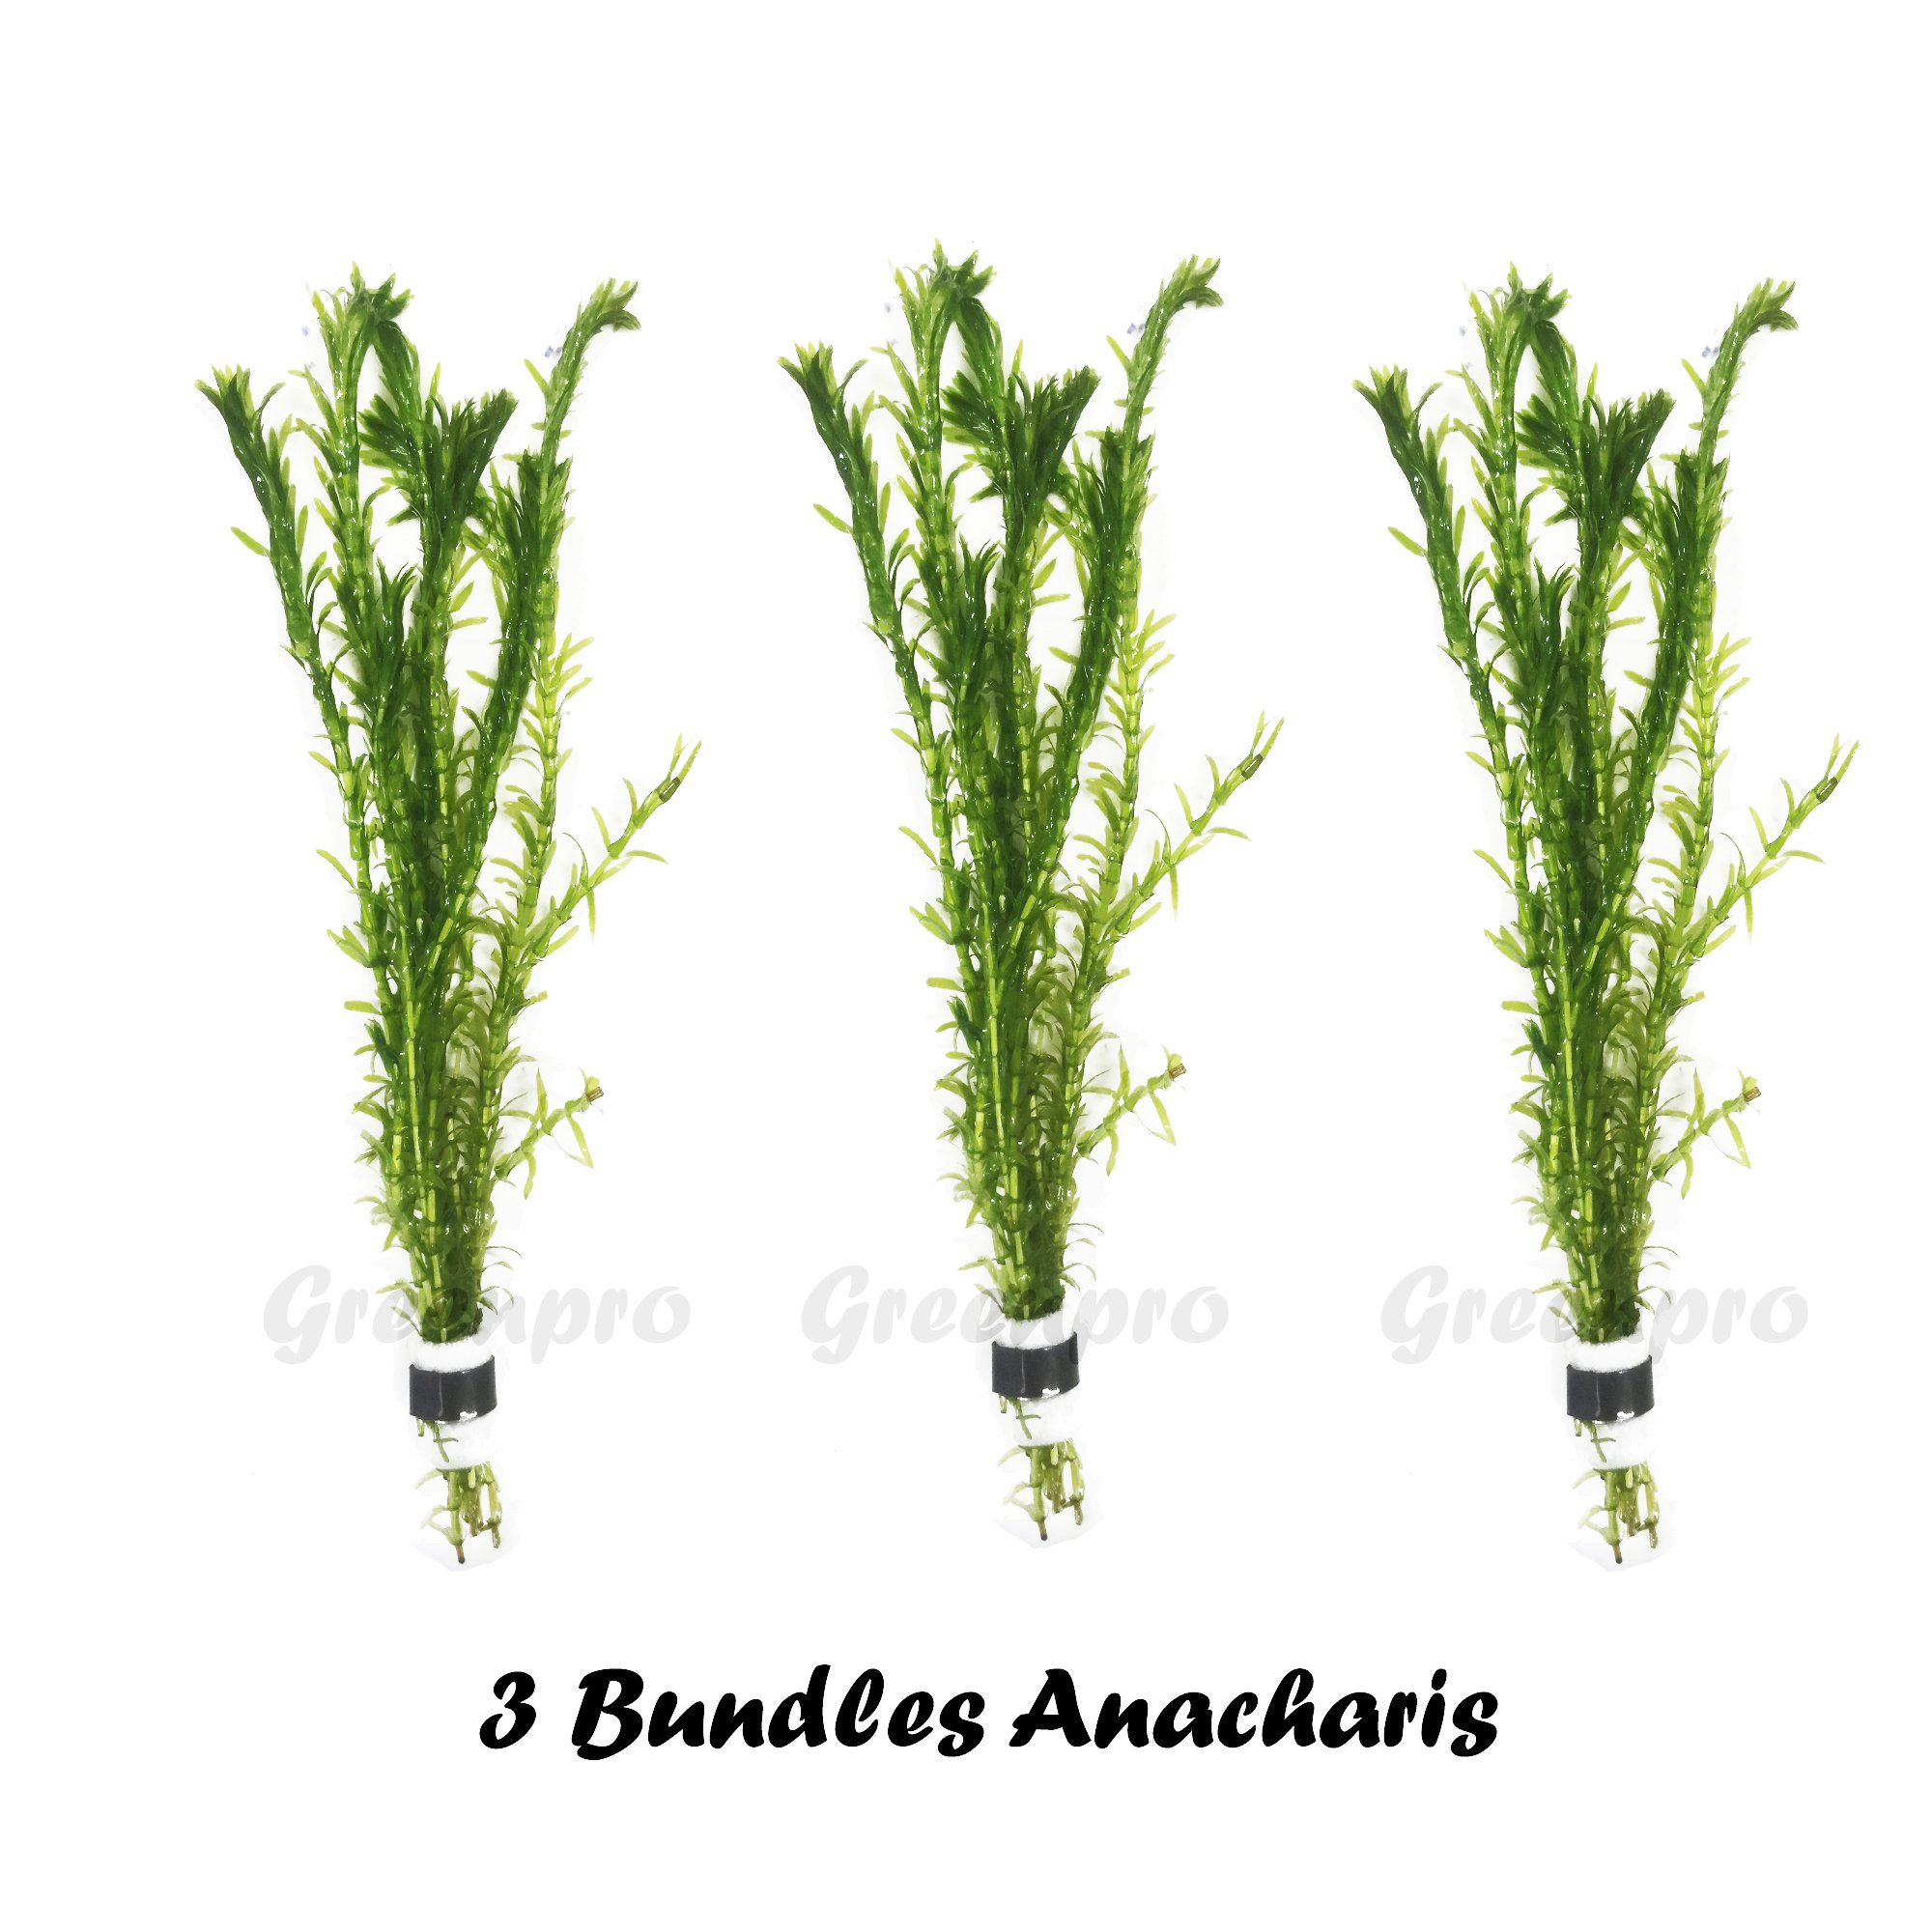 Greenpro 3 Bundles Anacharis Egeria Densa Elodea Live Aquarium Plants Freshwater Pond Aquatic Water Plant Decorations by Greenpro